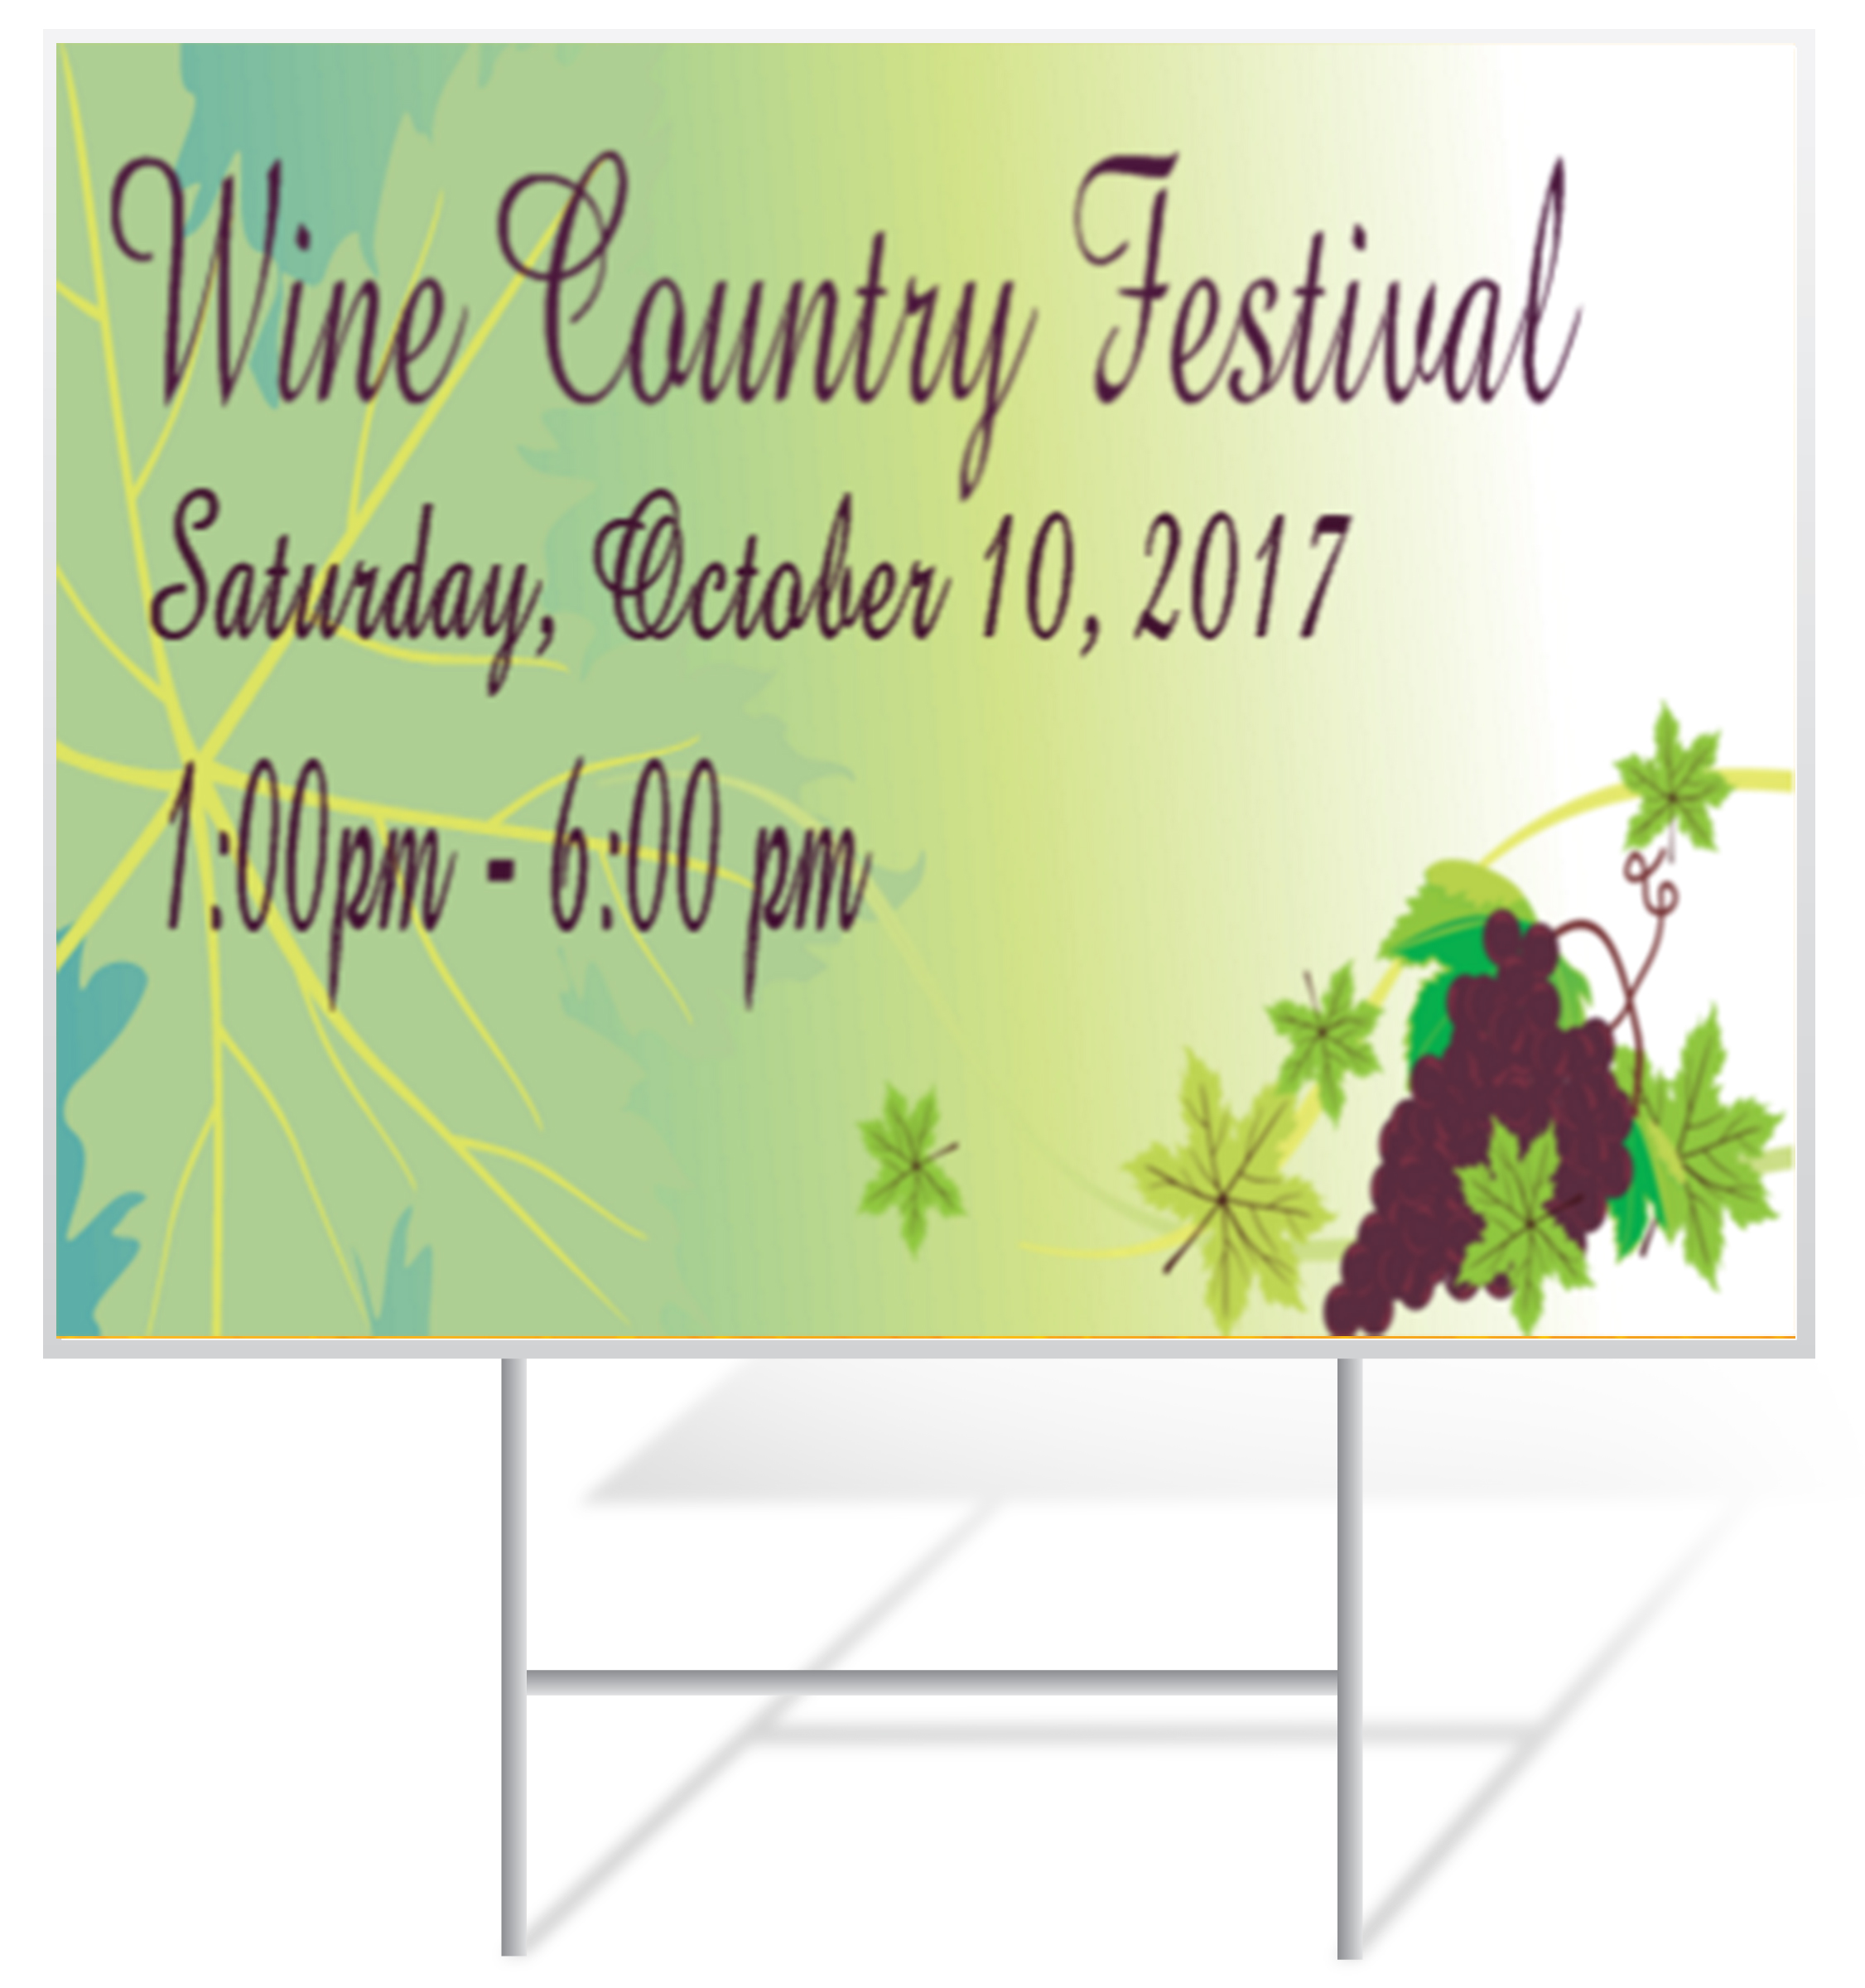 Festival Lawn Sign Example | LawnSigns.com